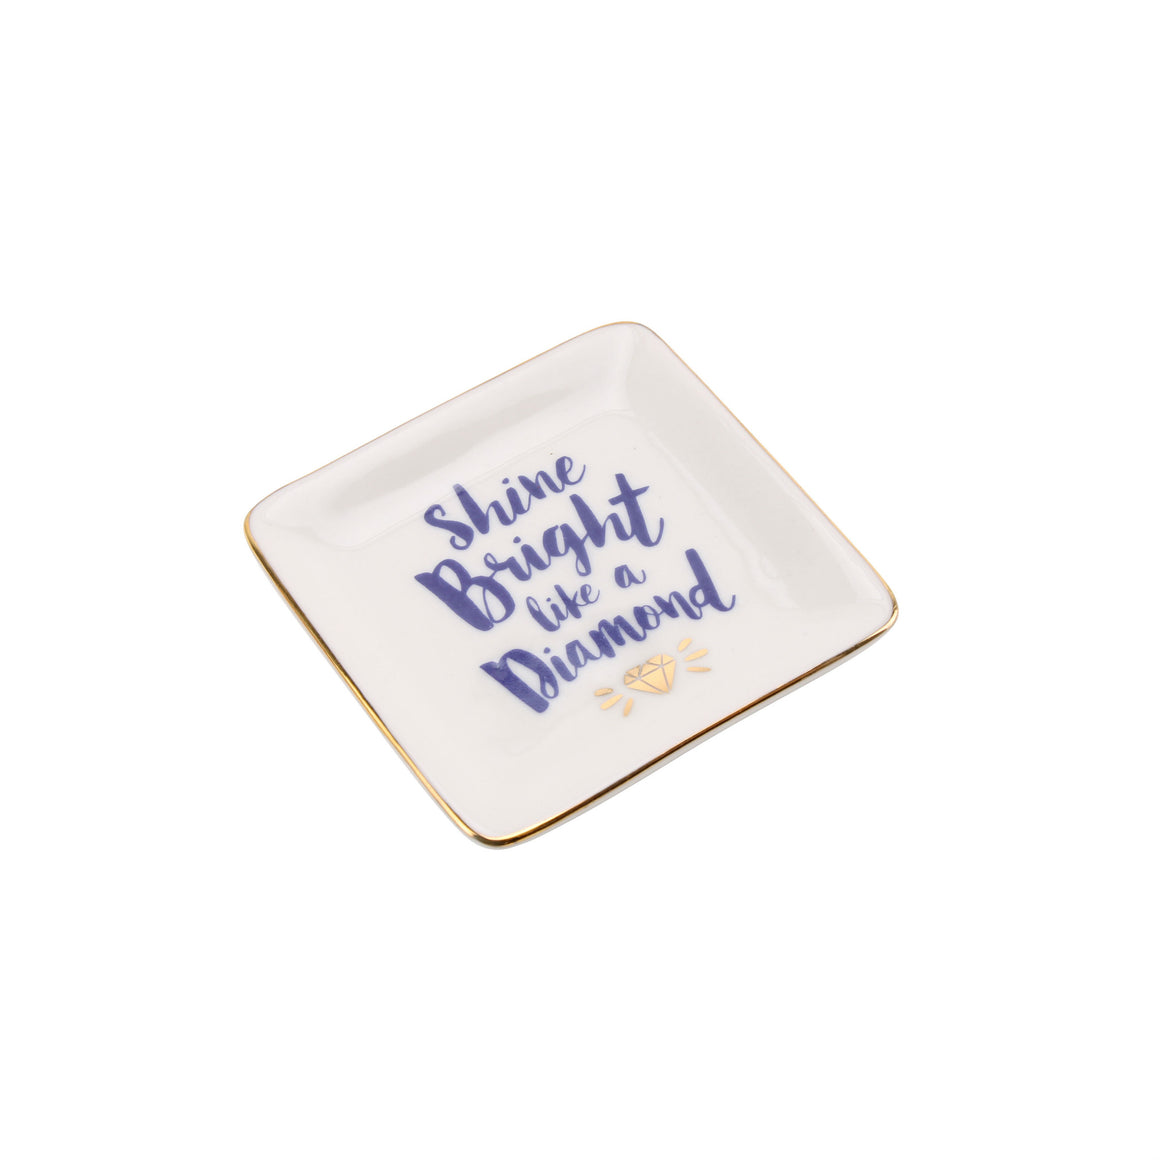 'Shine Bright Like A Diamond' Ceramic Ring Dish - The Love Trees